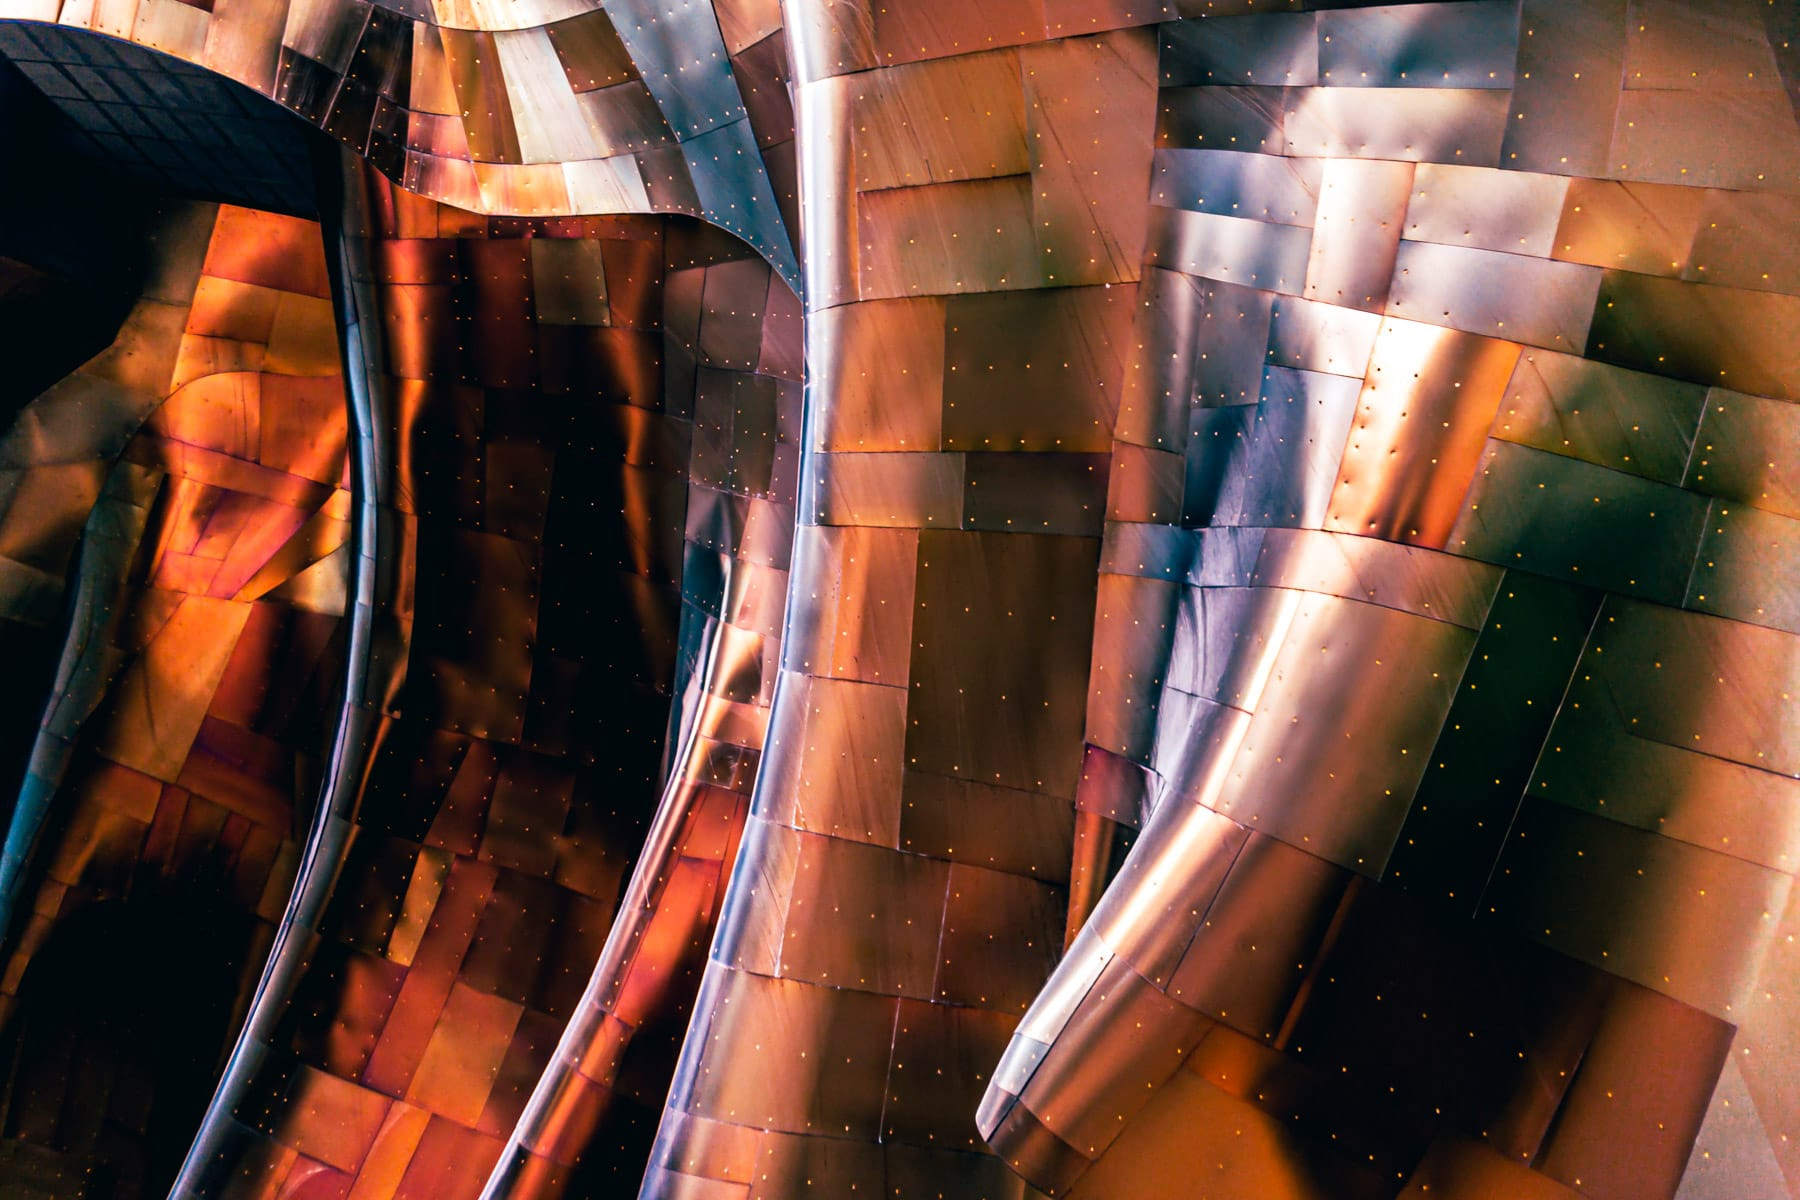 Abstract architectural detail of Frank Gehry's Museum of Pop Culture, Seattle.